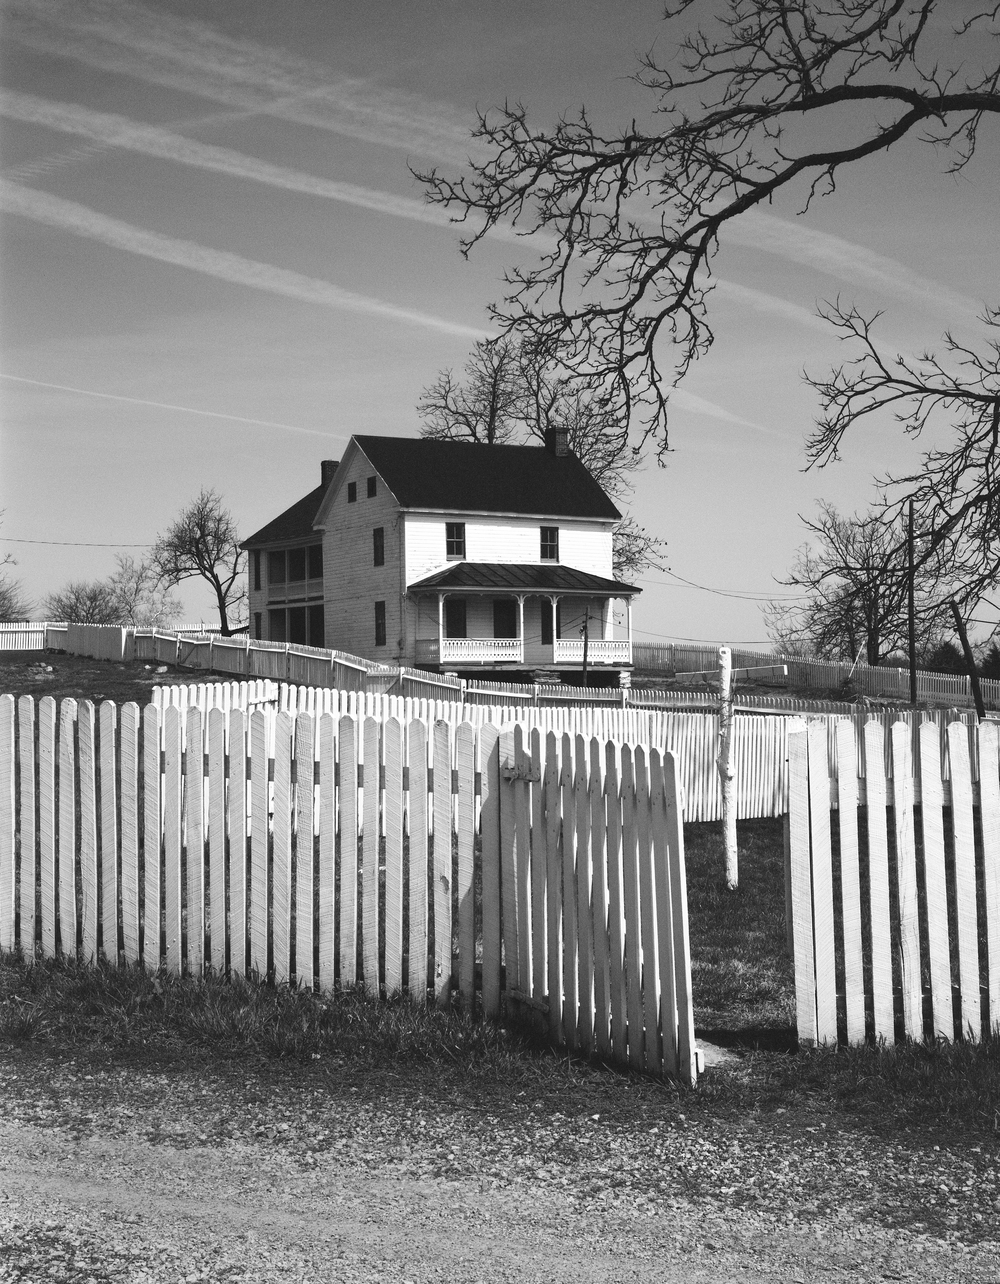 4x5_for_365_project_0102_Antietam_Poffenberger_Farmhouse.jpg